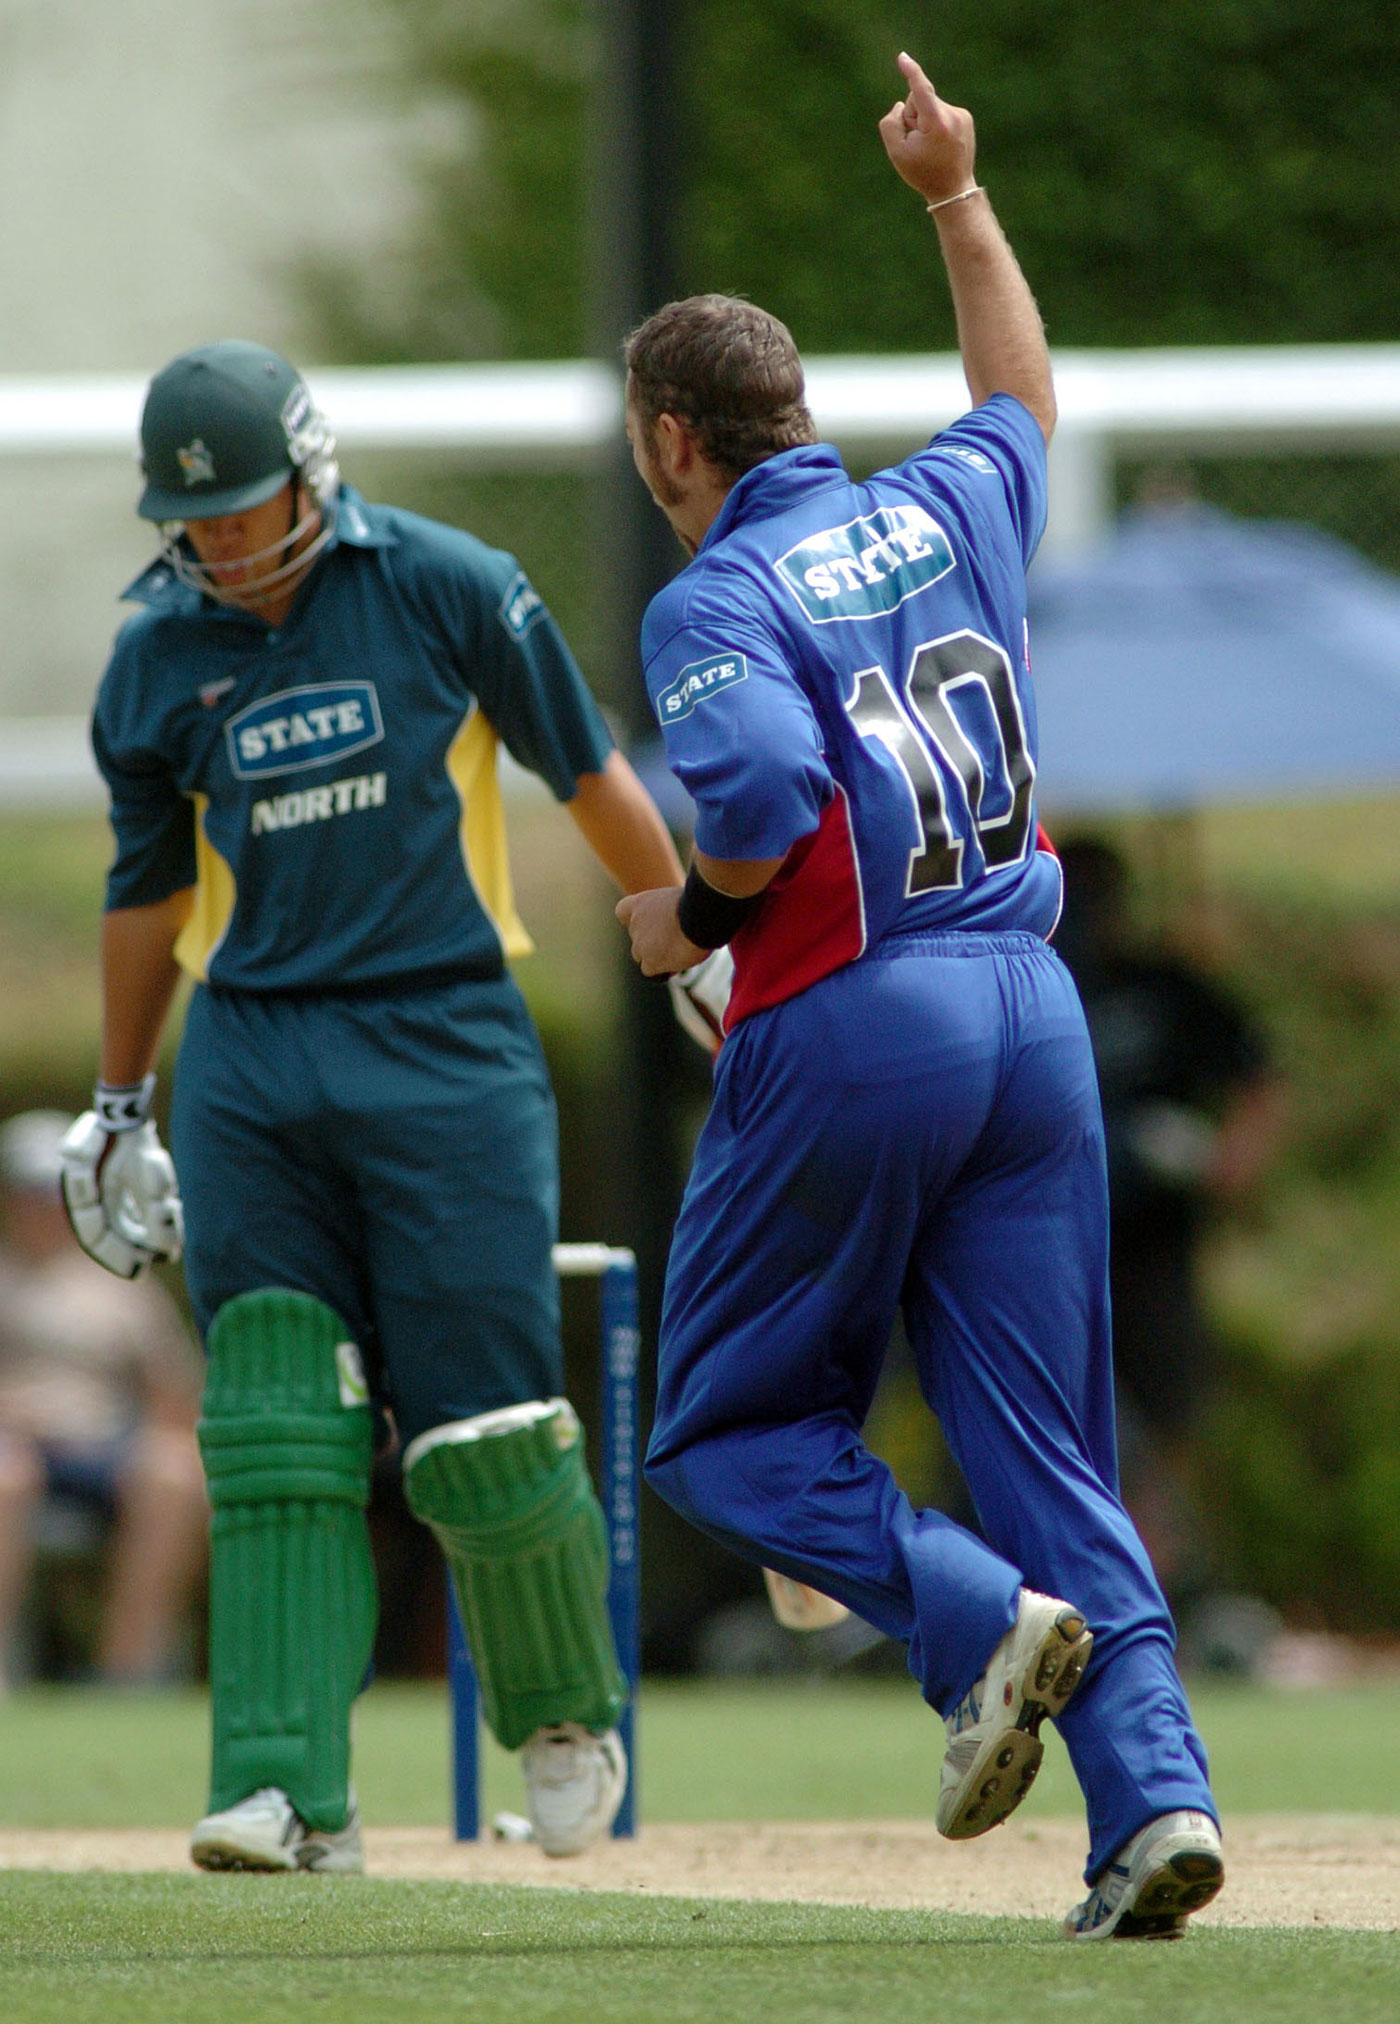 Craig McMillan dismisses Taylor in a North Island v South Island match, 2005